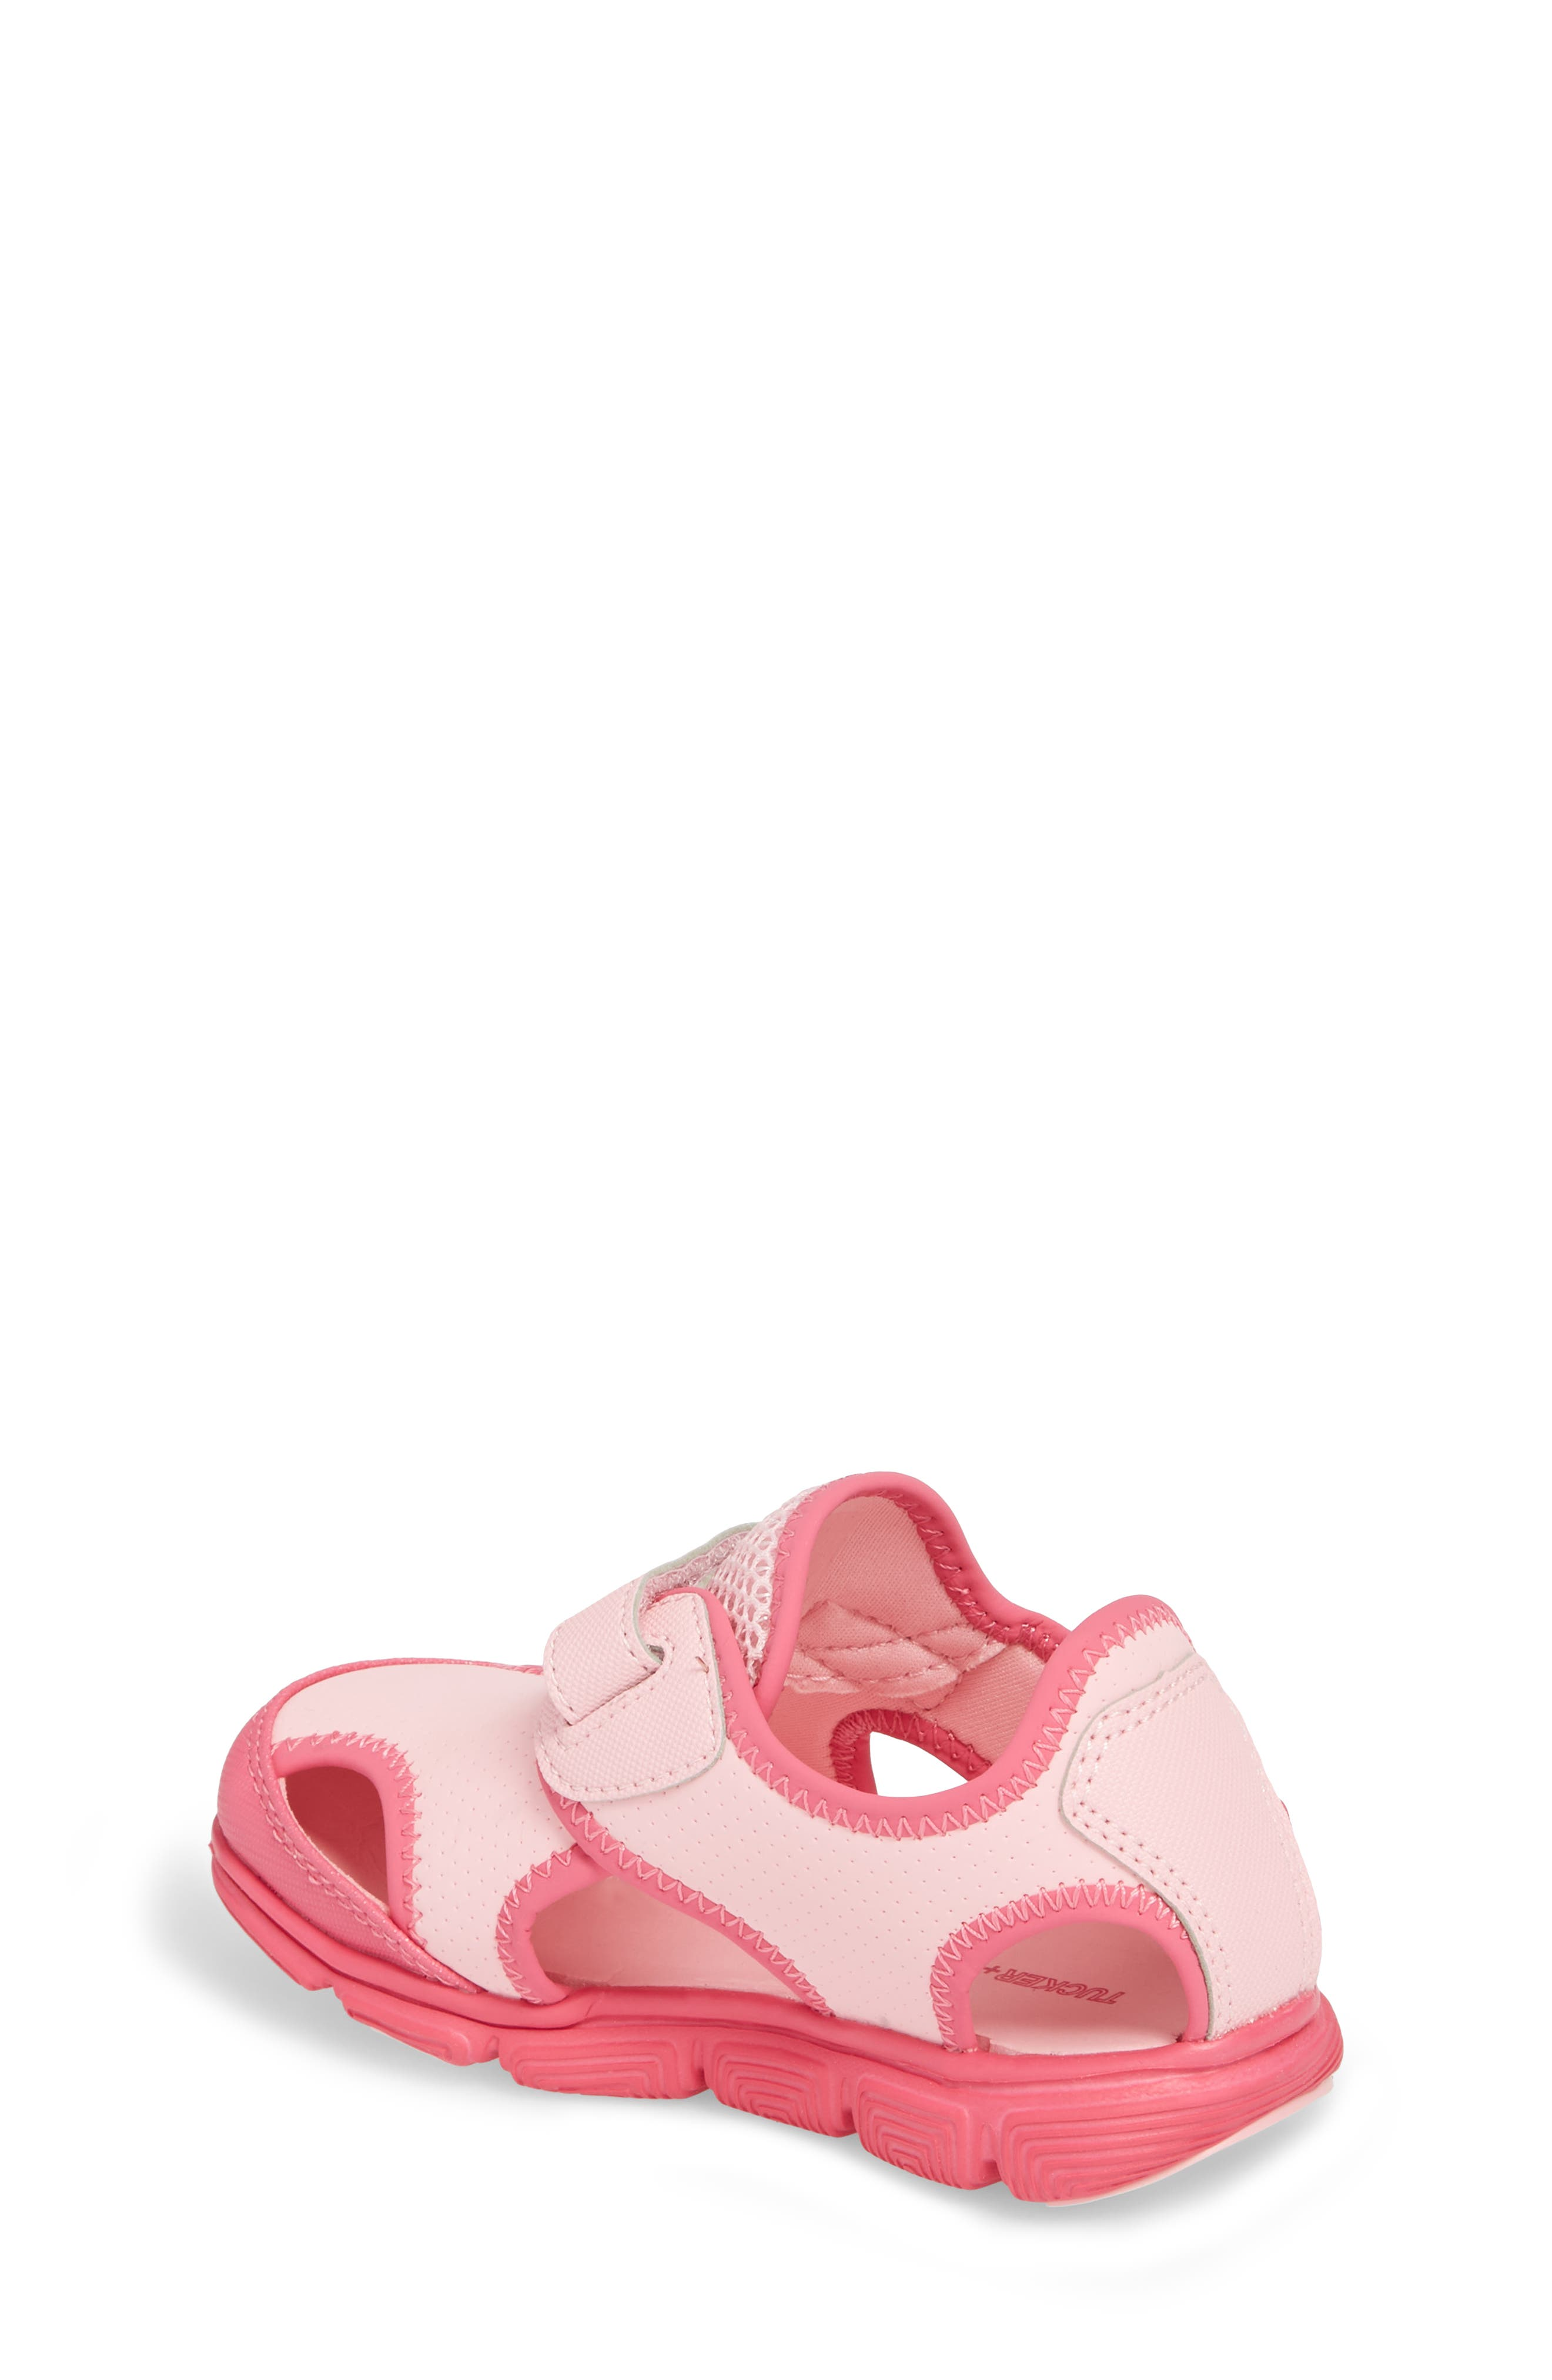 Sophie Water Sandal,                             Alternate thumbnail 2, color,                             Pink/ Dark Pink